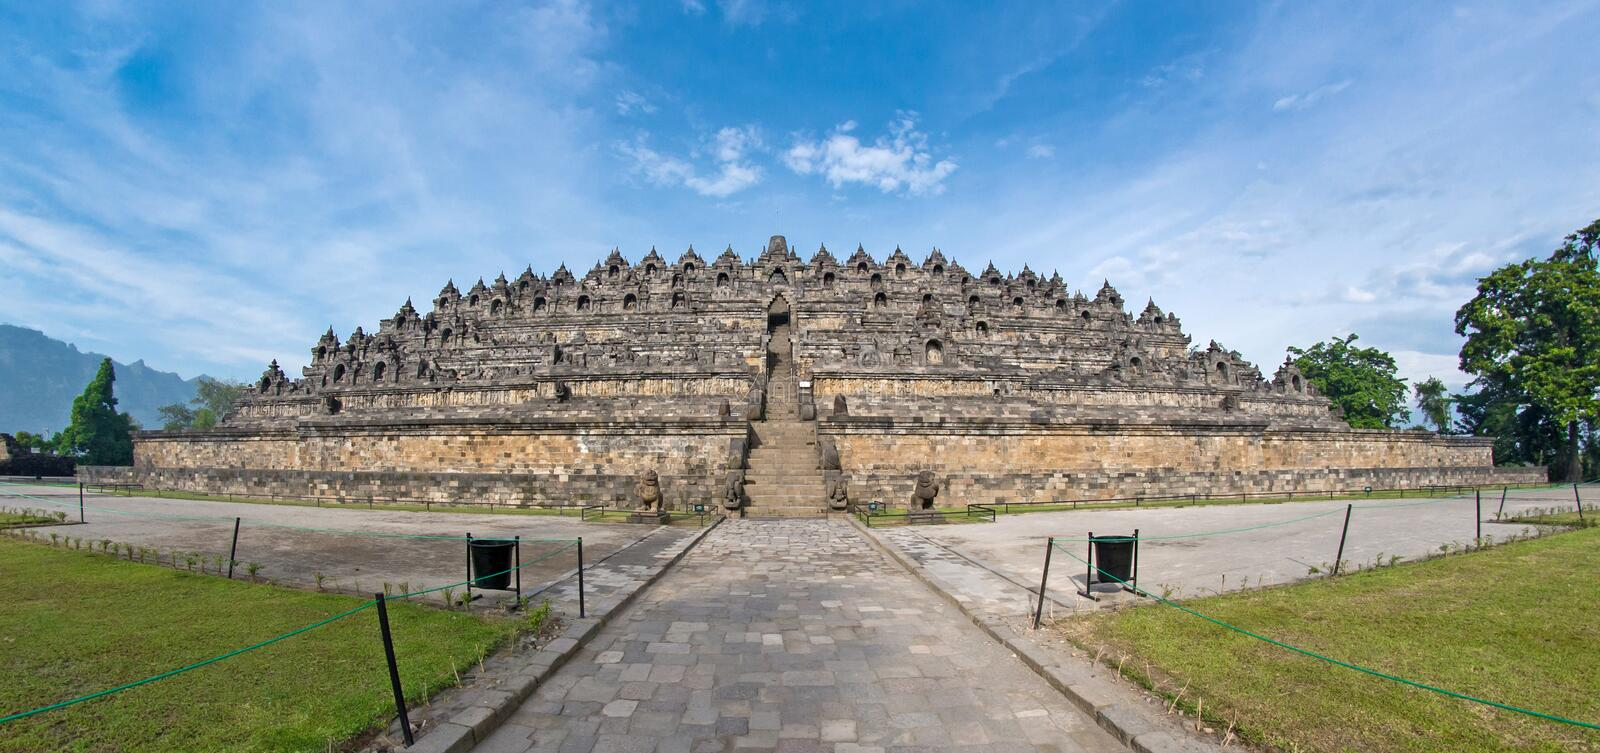 Download Fish-eye View Of Ancient Borobudur Temple Stock Image - Image: 23480471